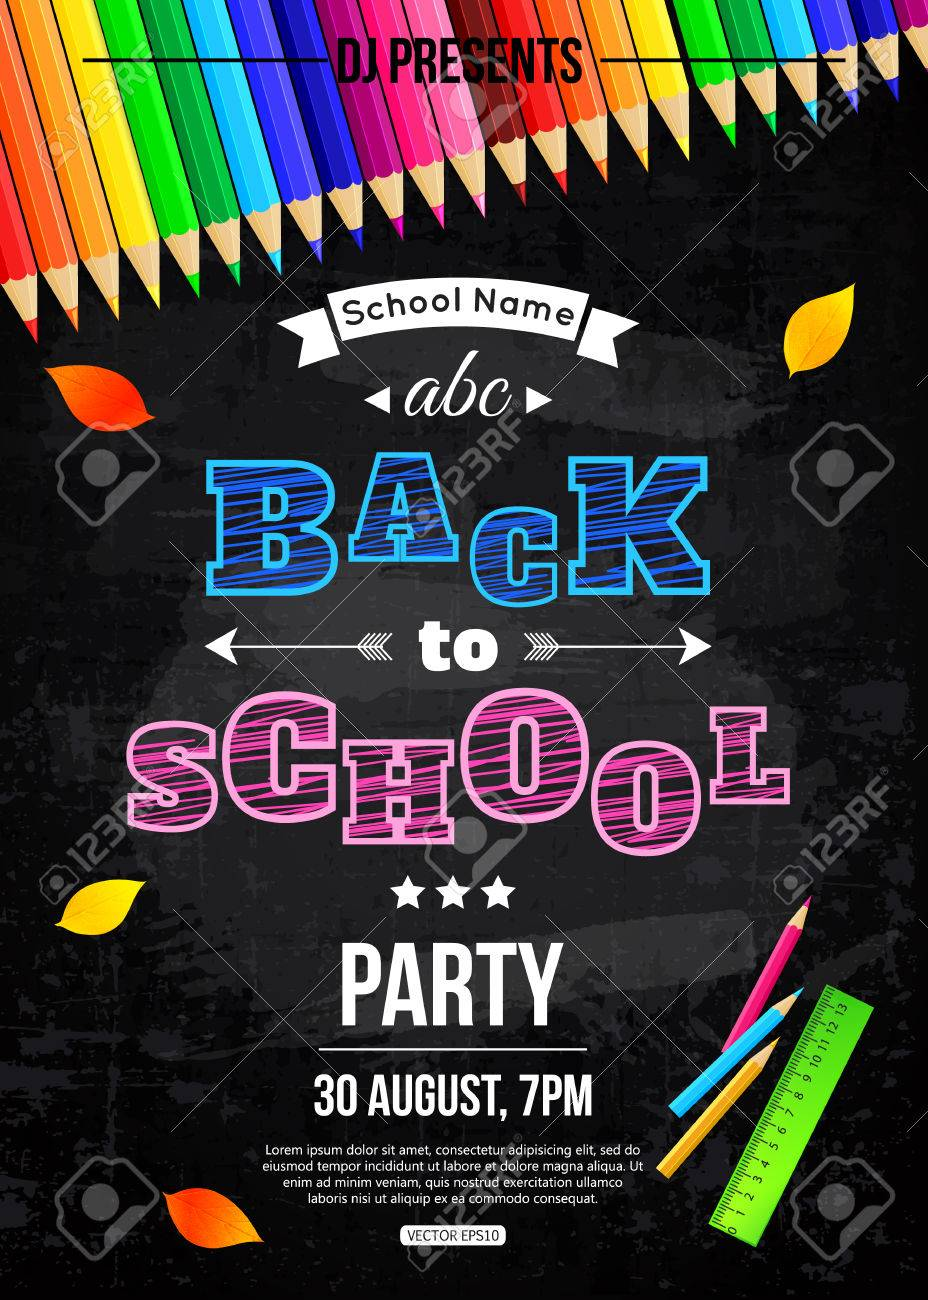 Back To School Party Poster Template Royalty Free Cliparts, Vectors ...